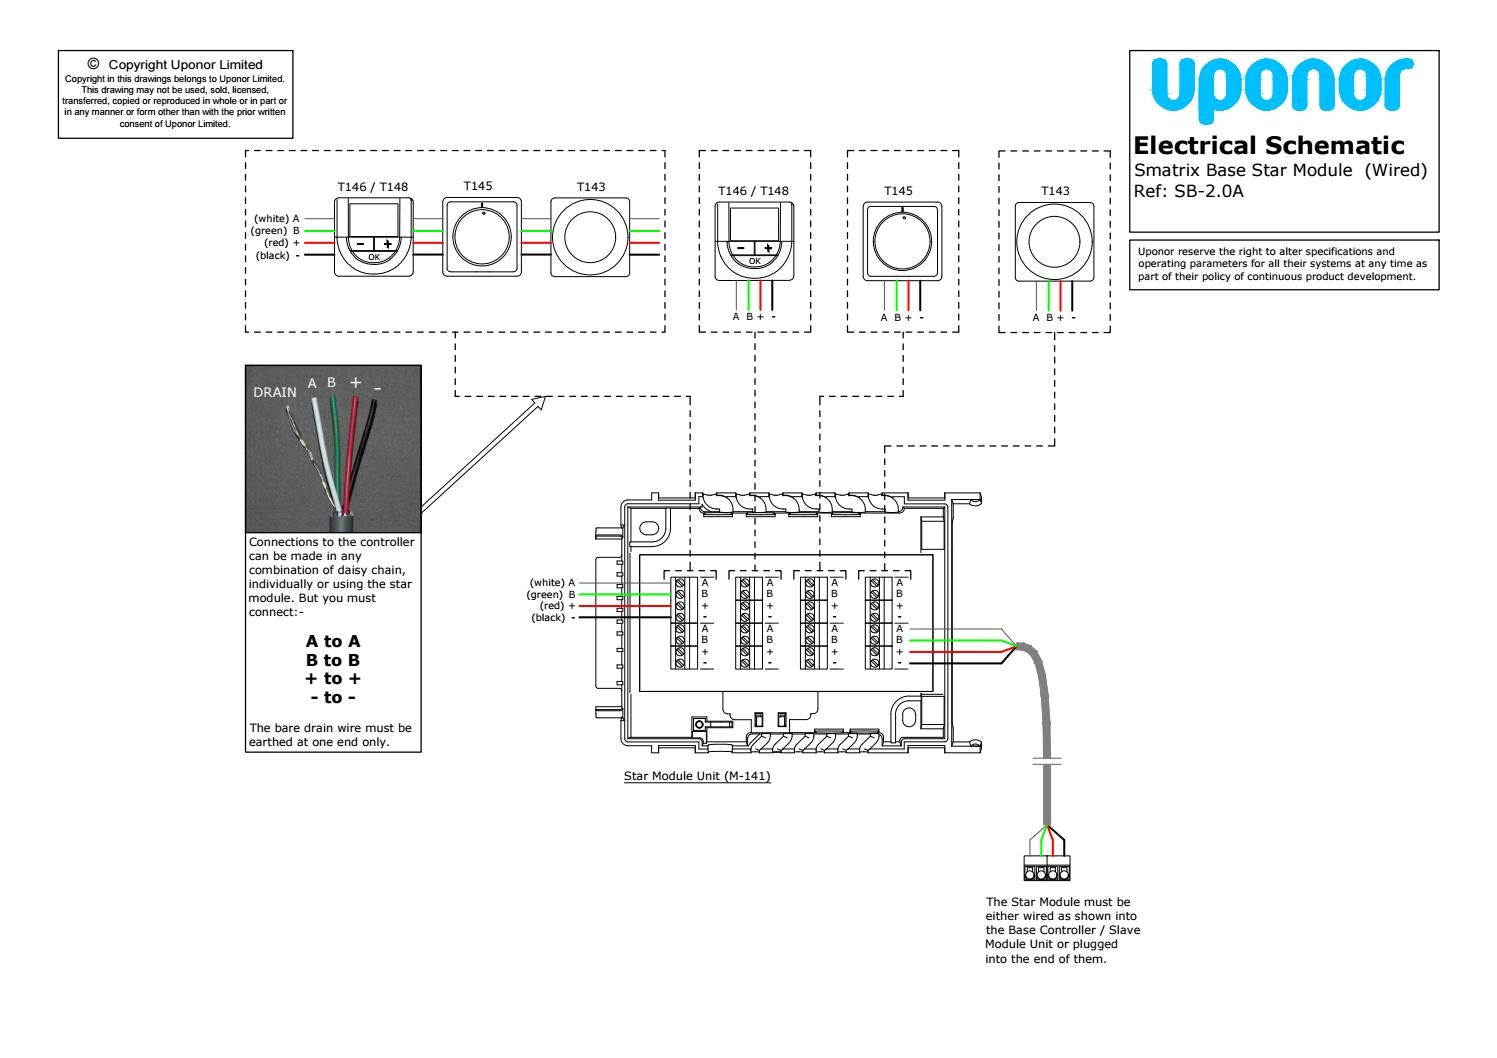 Smatrix Base Star Module By Uponor Uk Issuu Daisy Chain Electrical Schematics Wiring Diagram